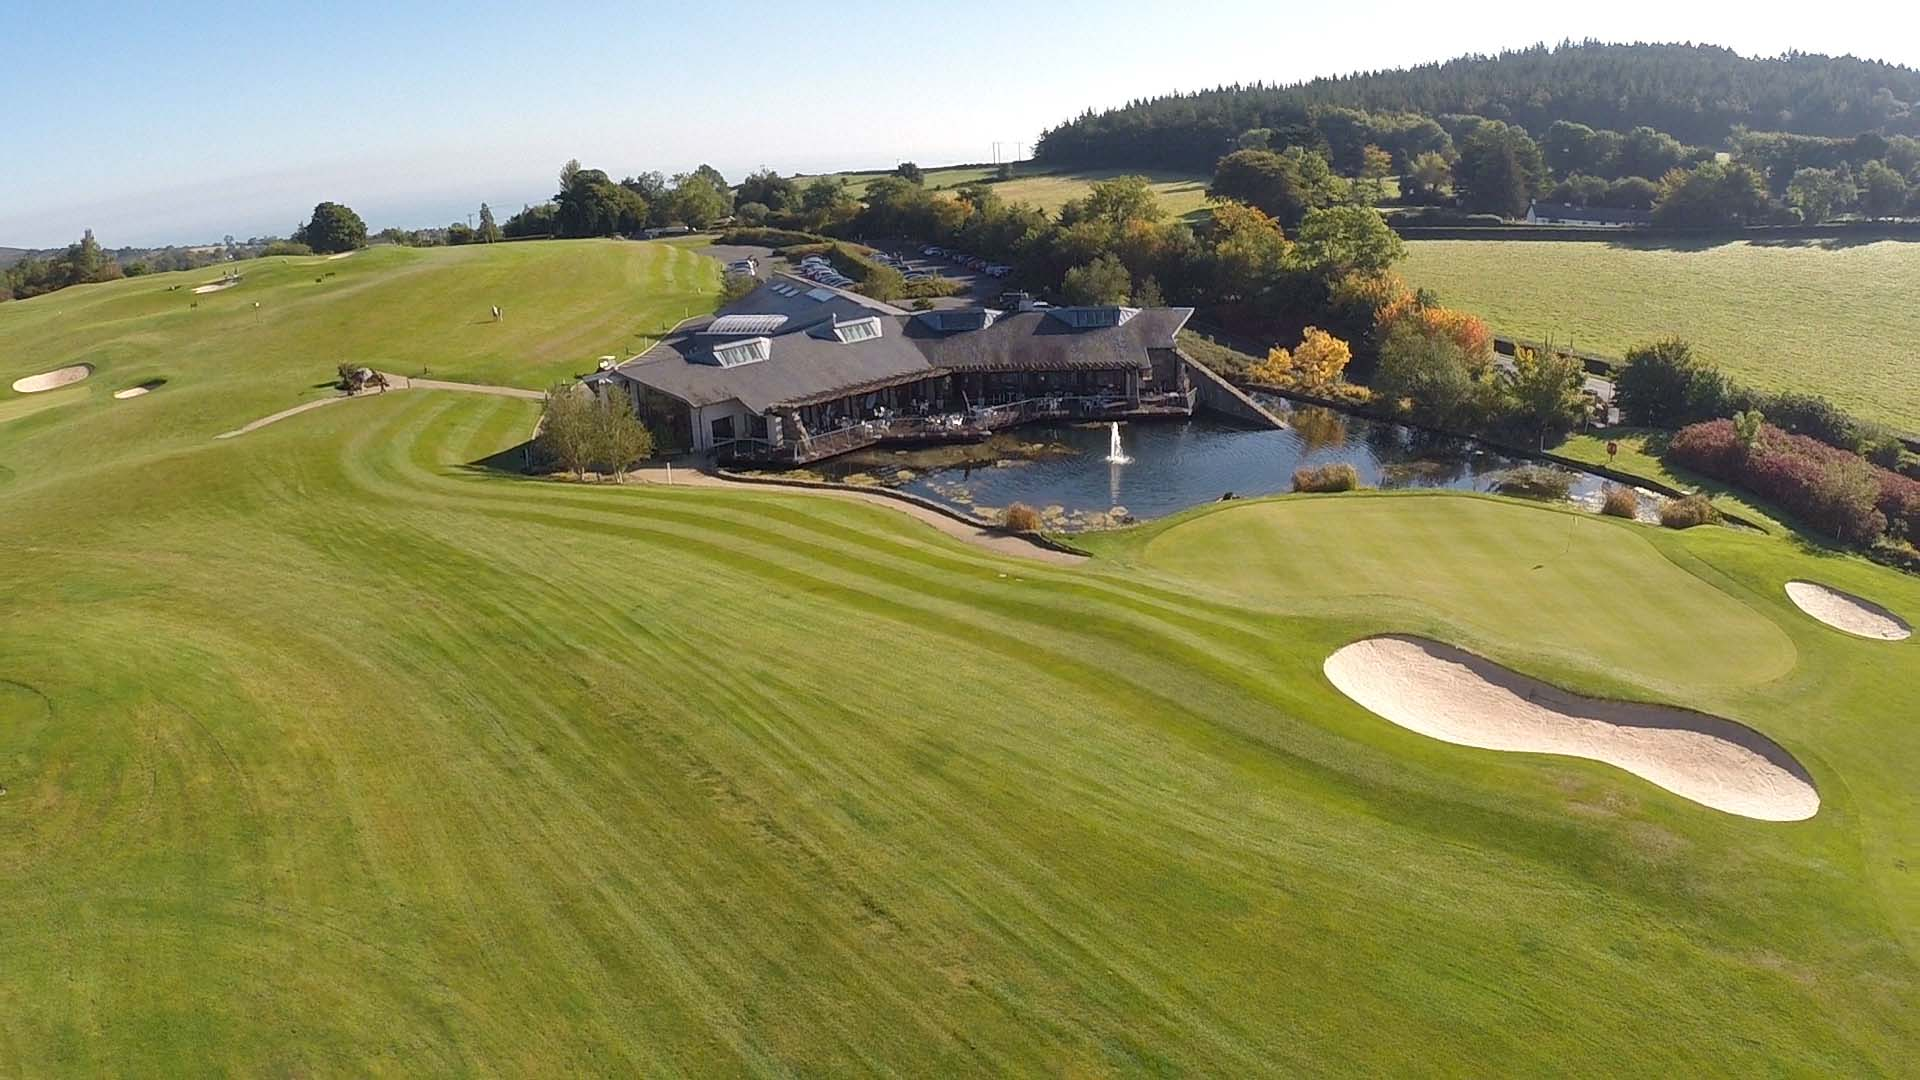 Brosnan Photography - Drone Video at Glen of the Downs Golf Club